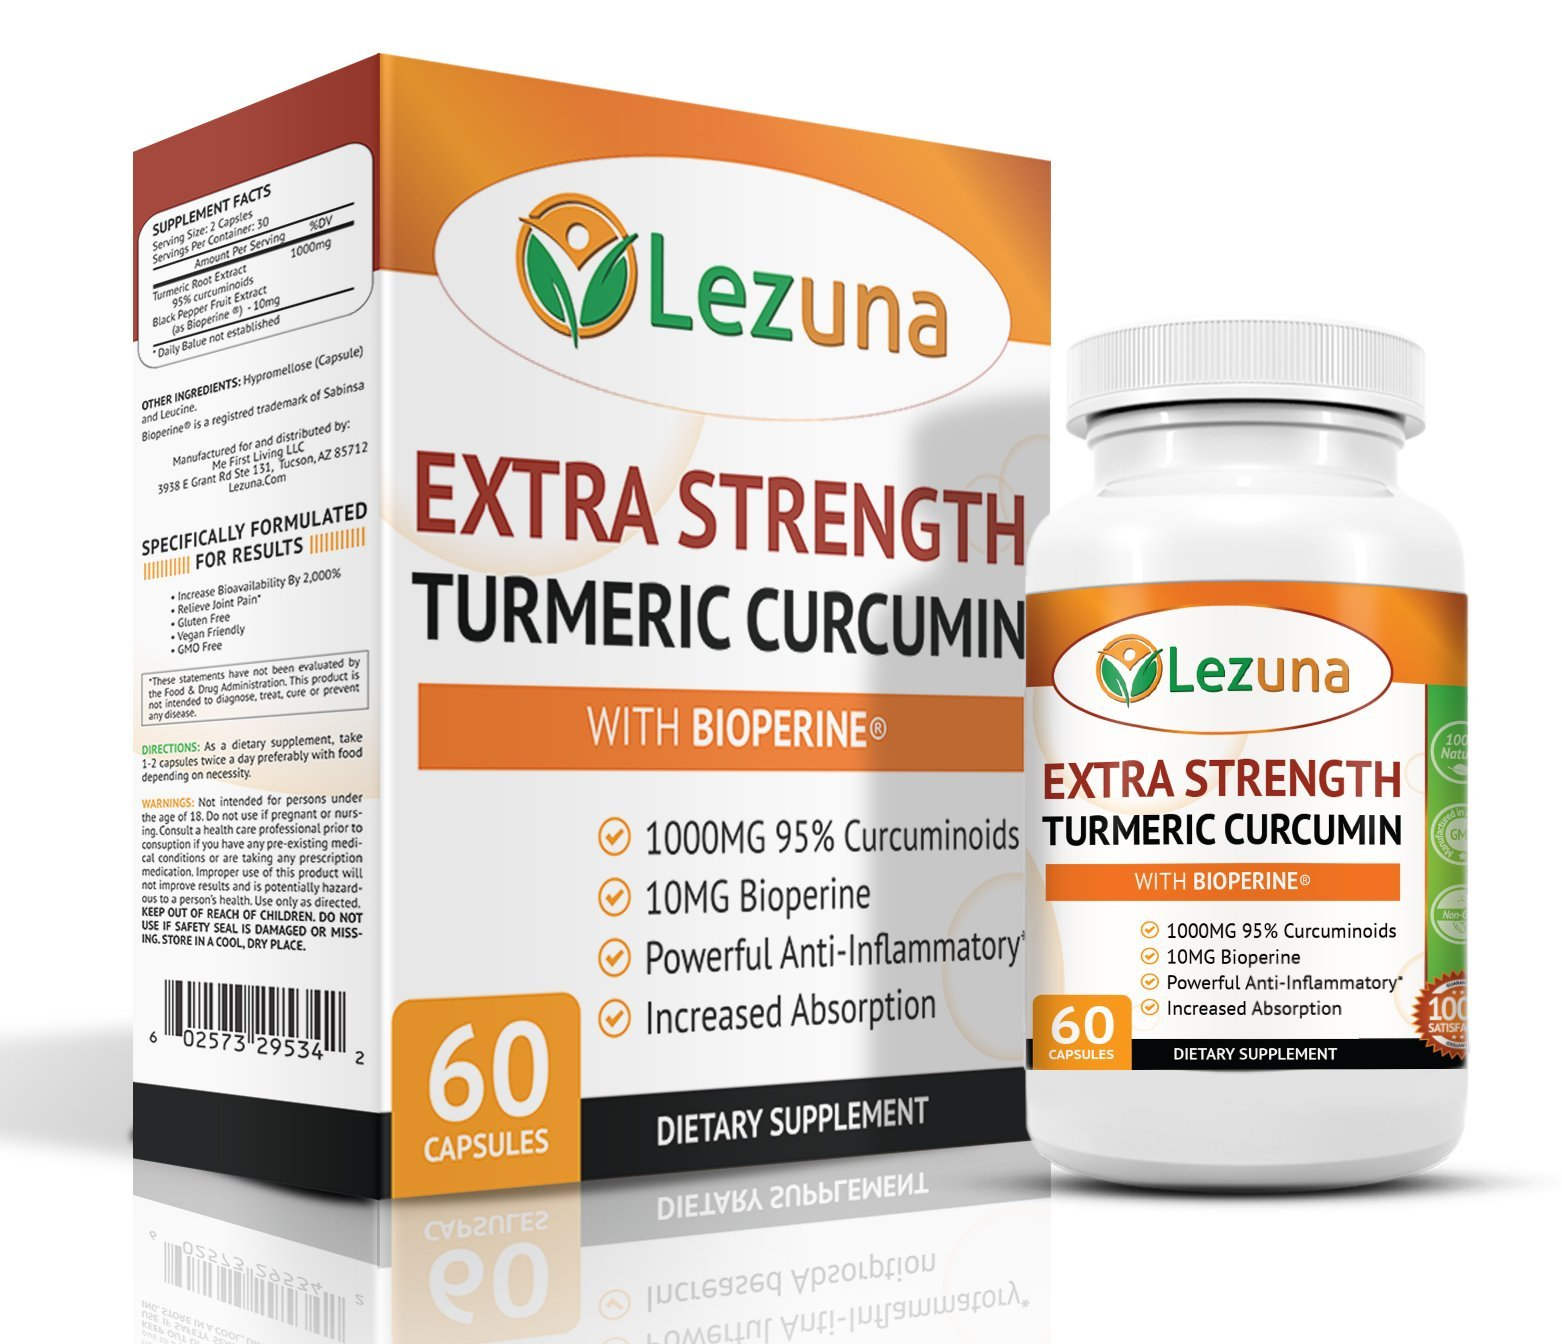 Lezuna Extra Strength Turmeric Curcumin with Bioperine, 1000mg 95% Curcuminoids, 10mg Bioperine, 2,000% Increase Bioavailability, Certified GMP Facility, Made In USA, 60 Capsules